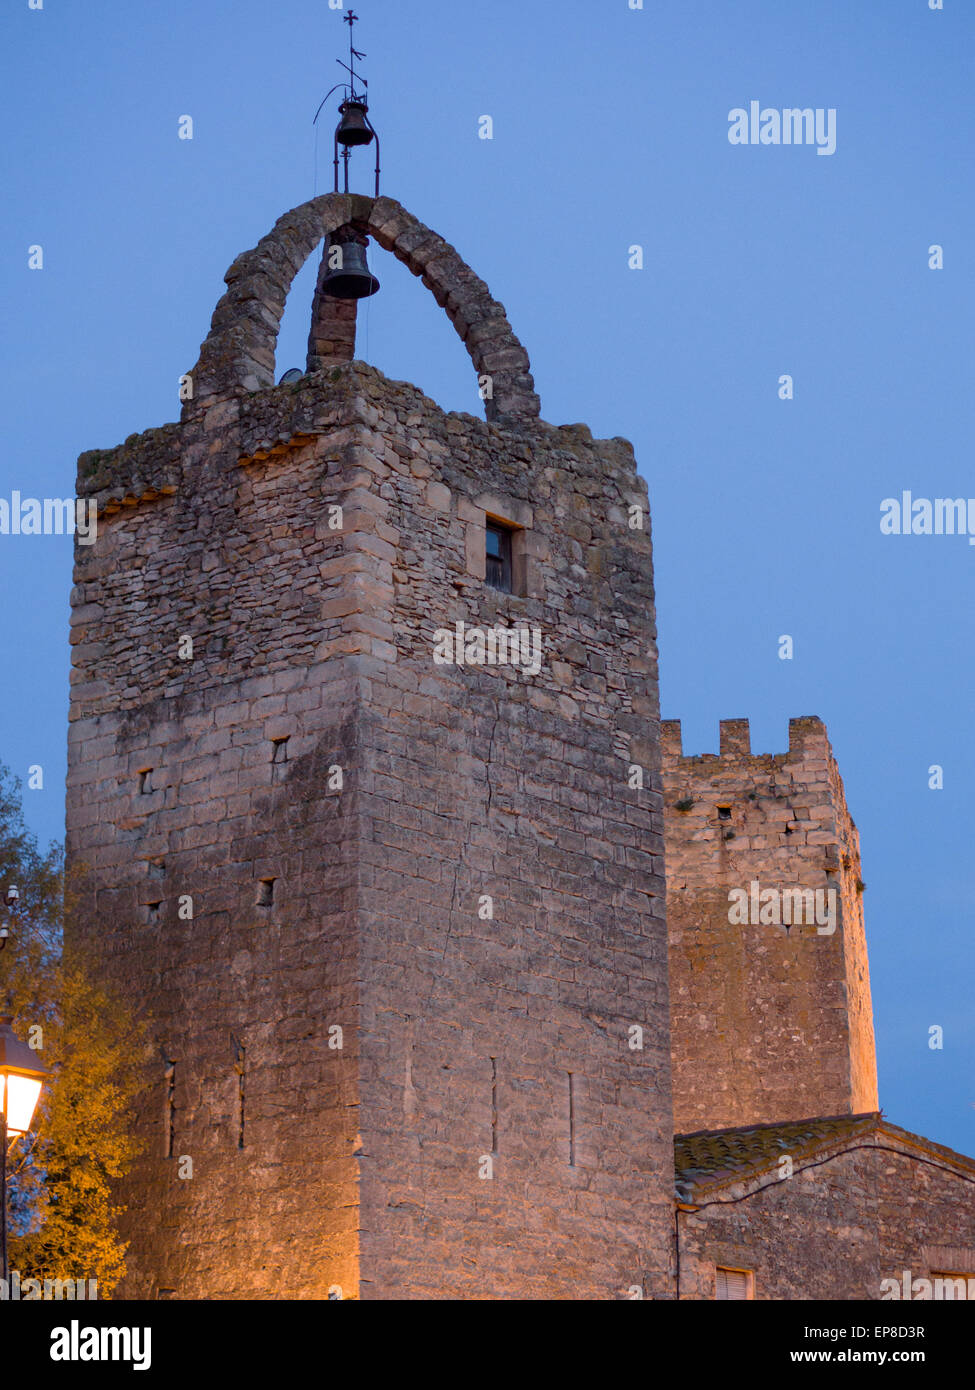 Ancient Belltower at Peratallada at Dusk. The large bell is hung from a triple arch at the top of a massive square - Stock Image